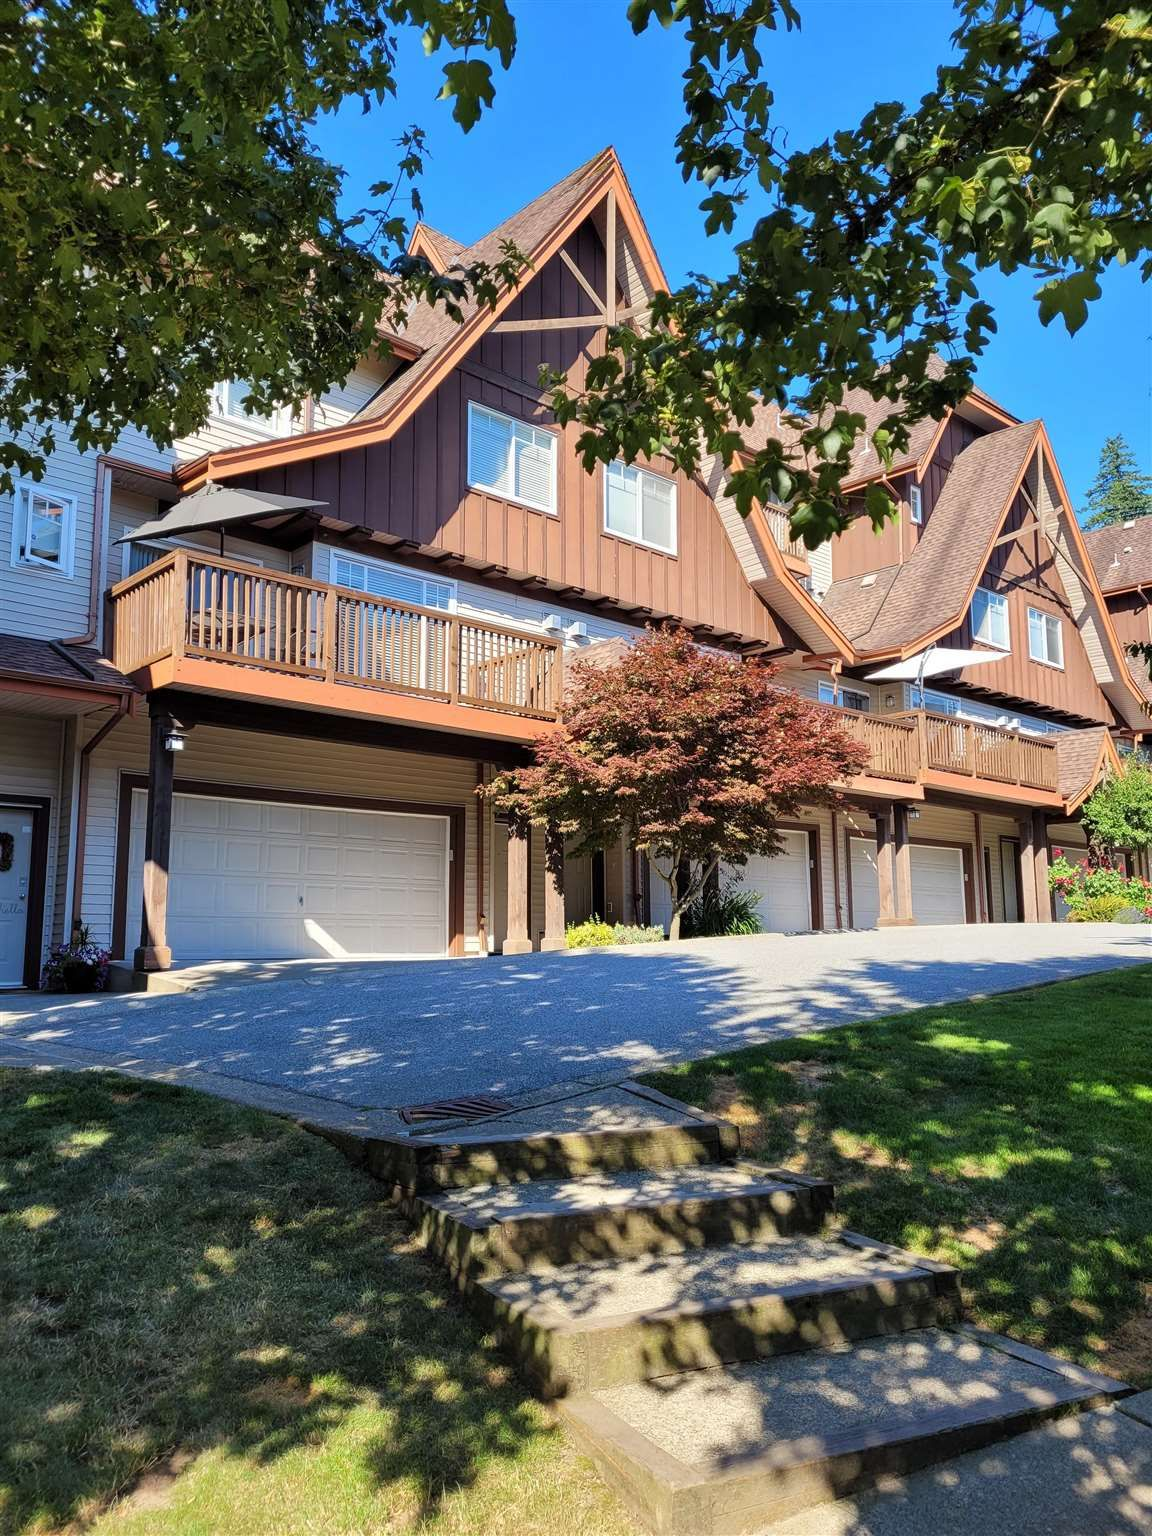 """Main Photo: 68 2000 PANORAMA Drive in Port Moody: Heritage Woods PM Townhouse for sale in """"MOUNTAINS EDGE"""" : MLS®# R2592495"""